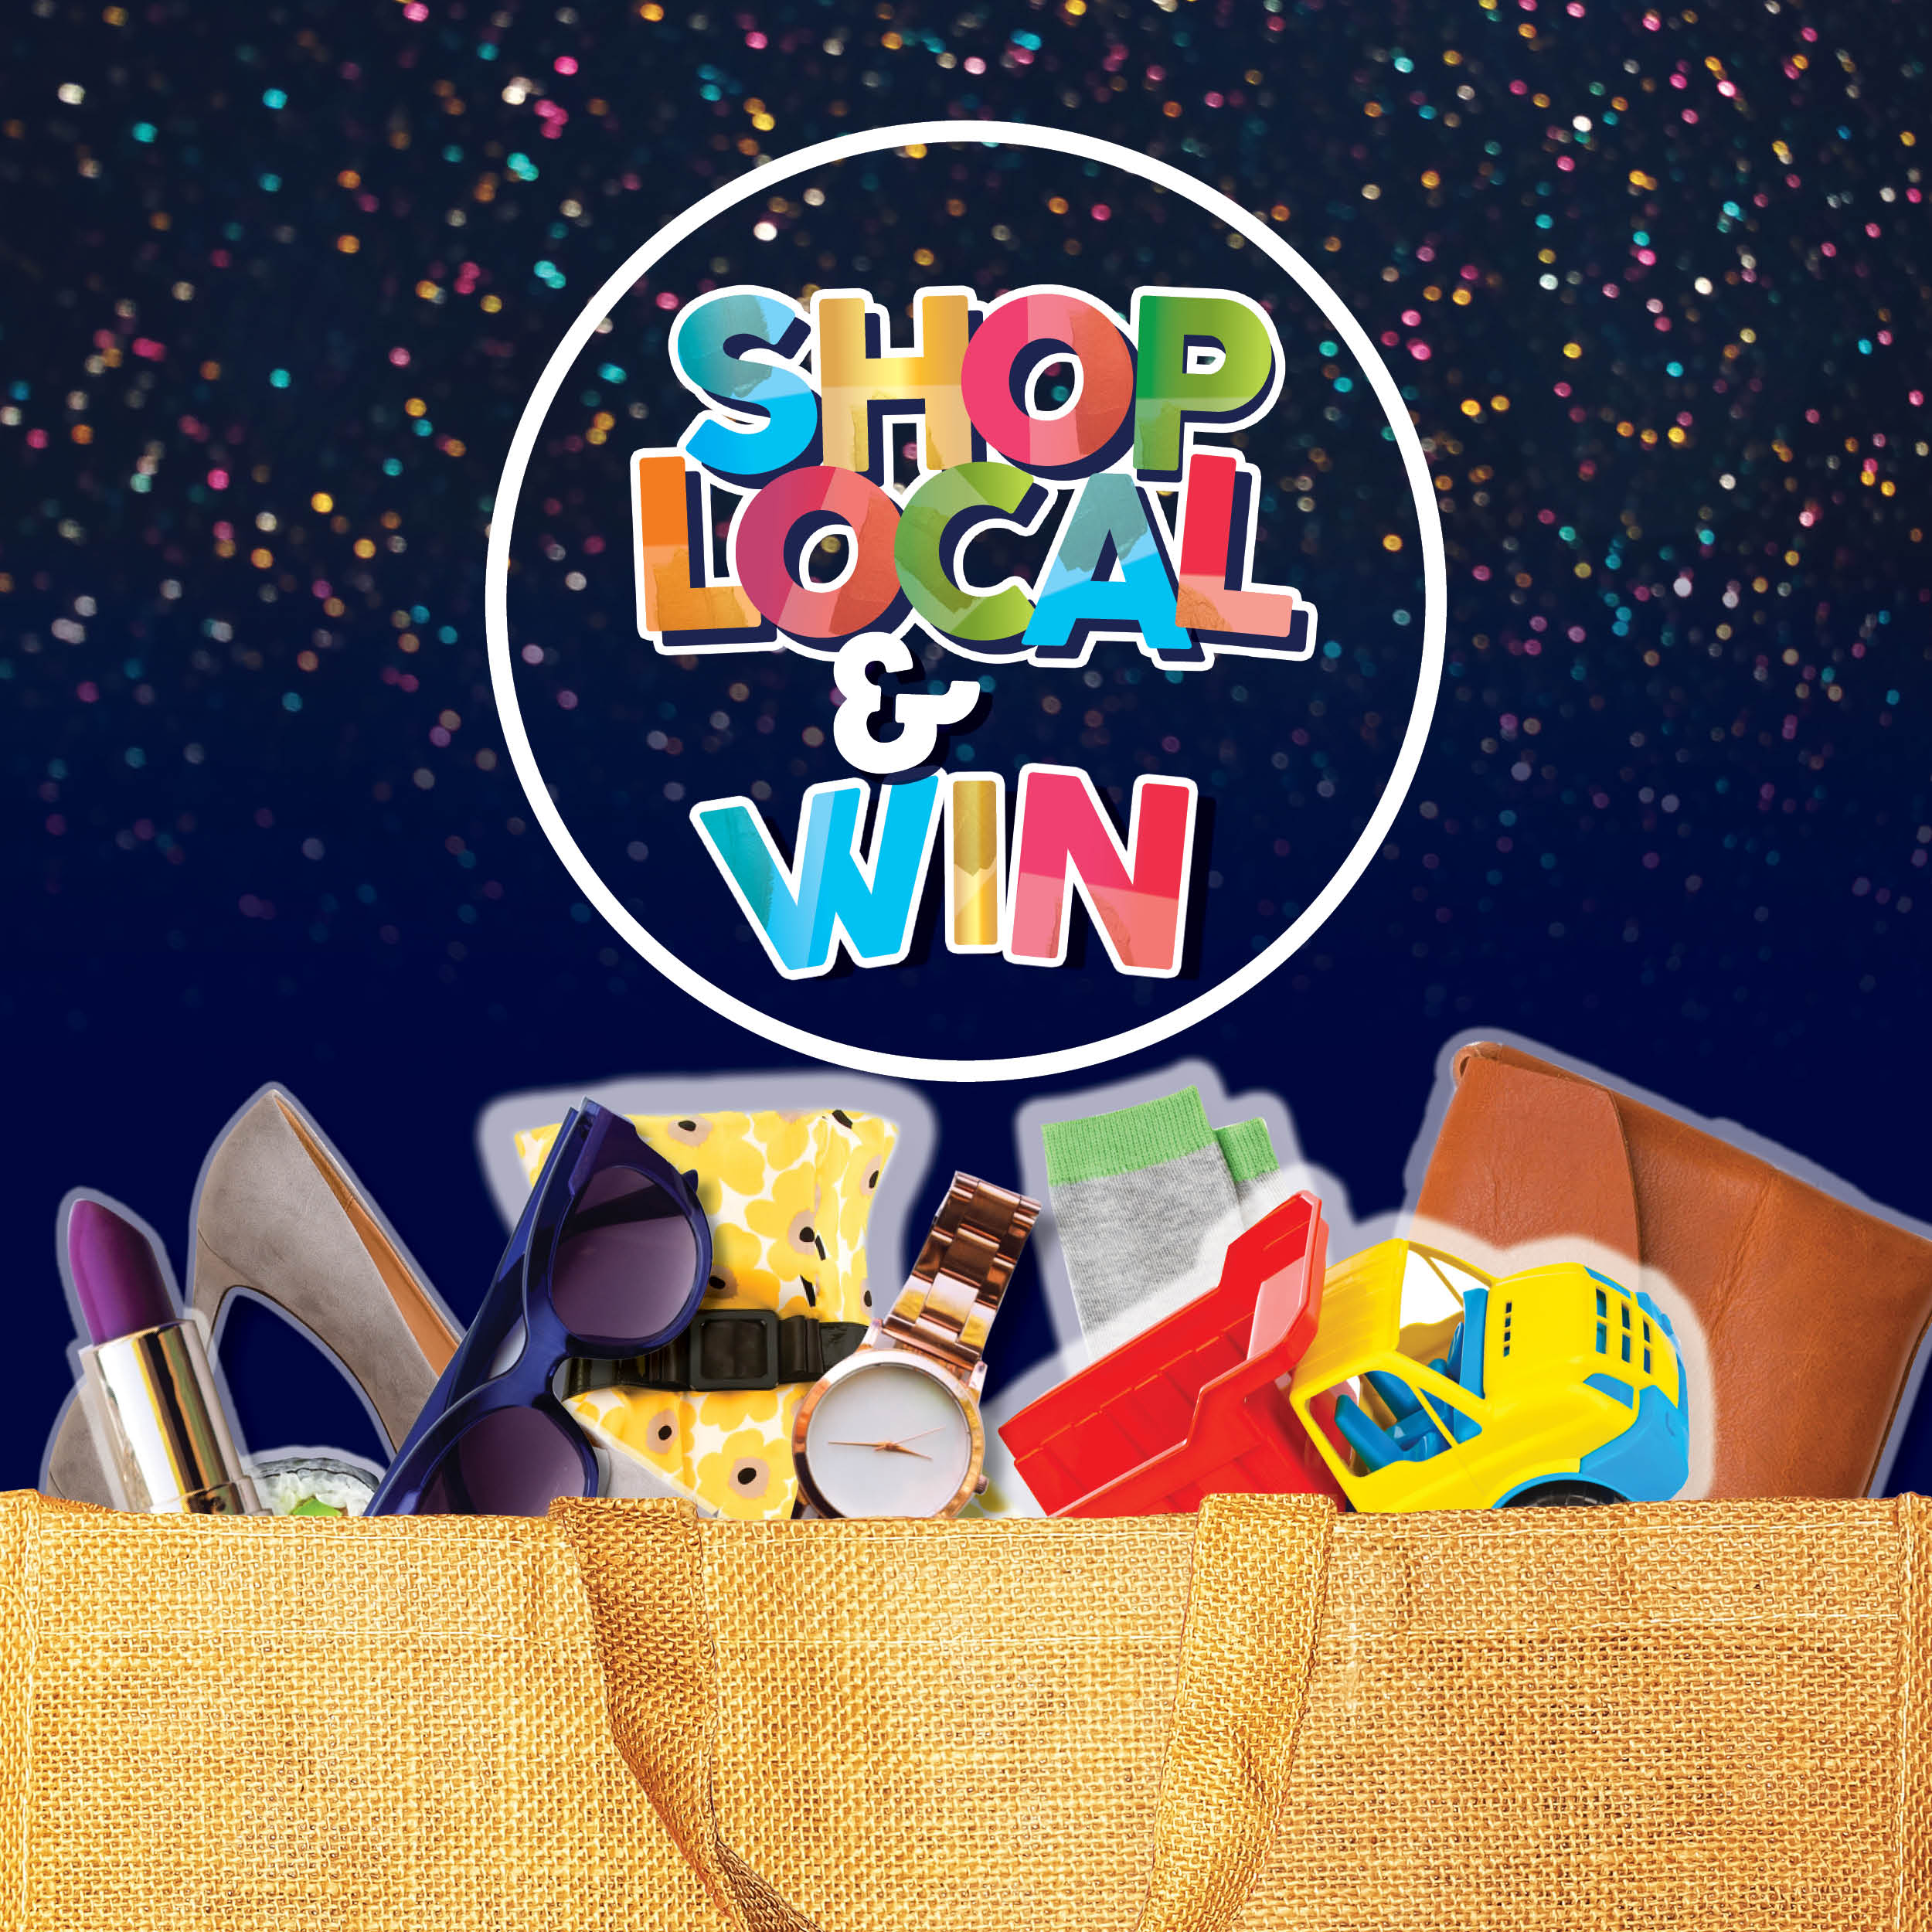 Shop Local and WIN